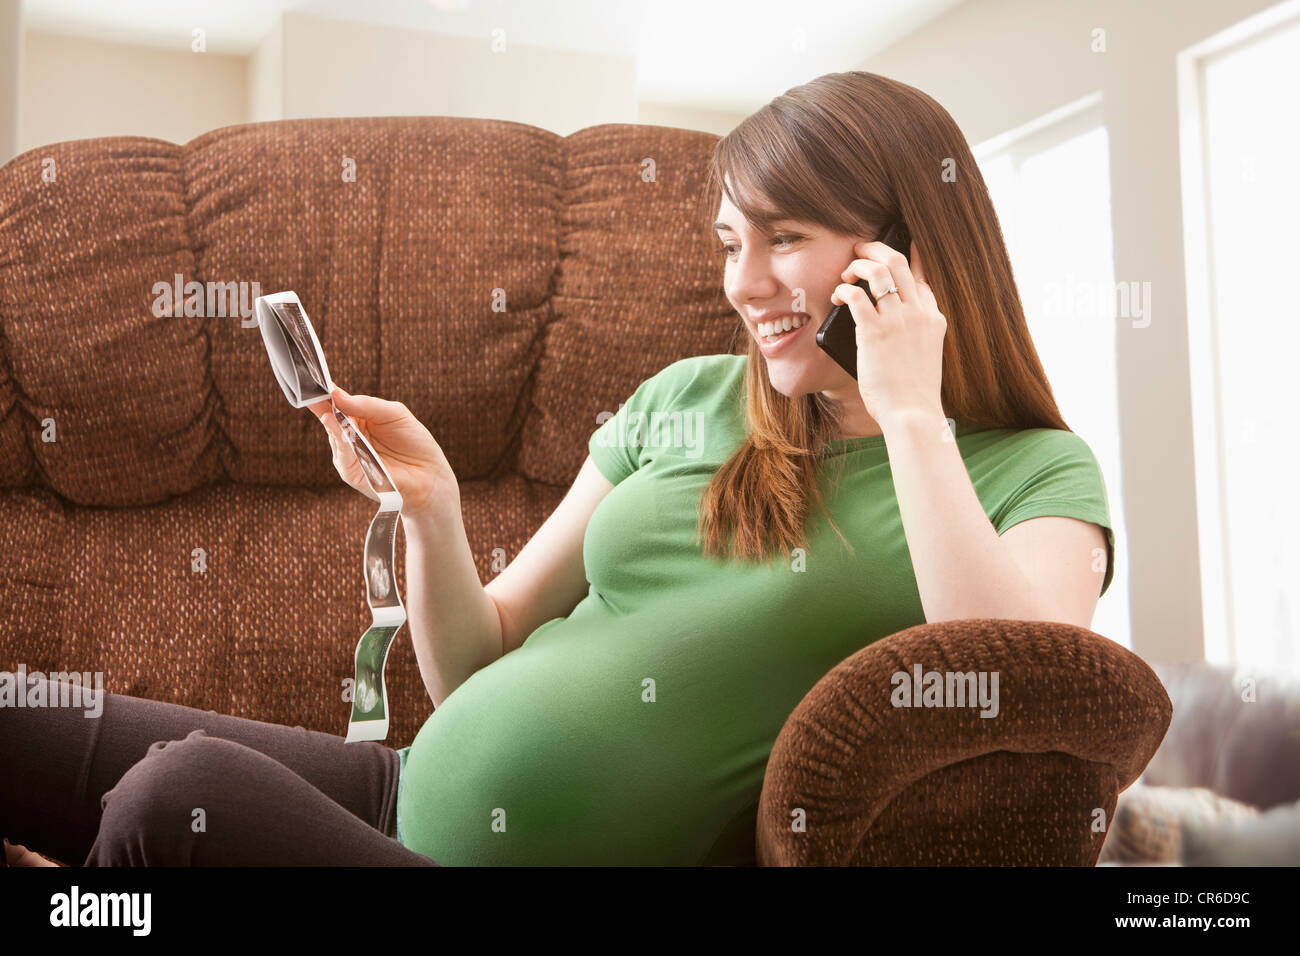 Portrait of pregnant woman watching ultrasonography scan - Stock Image